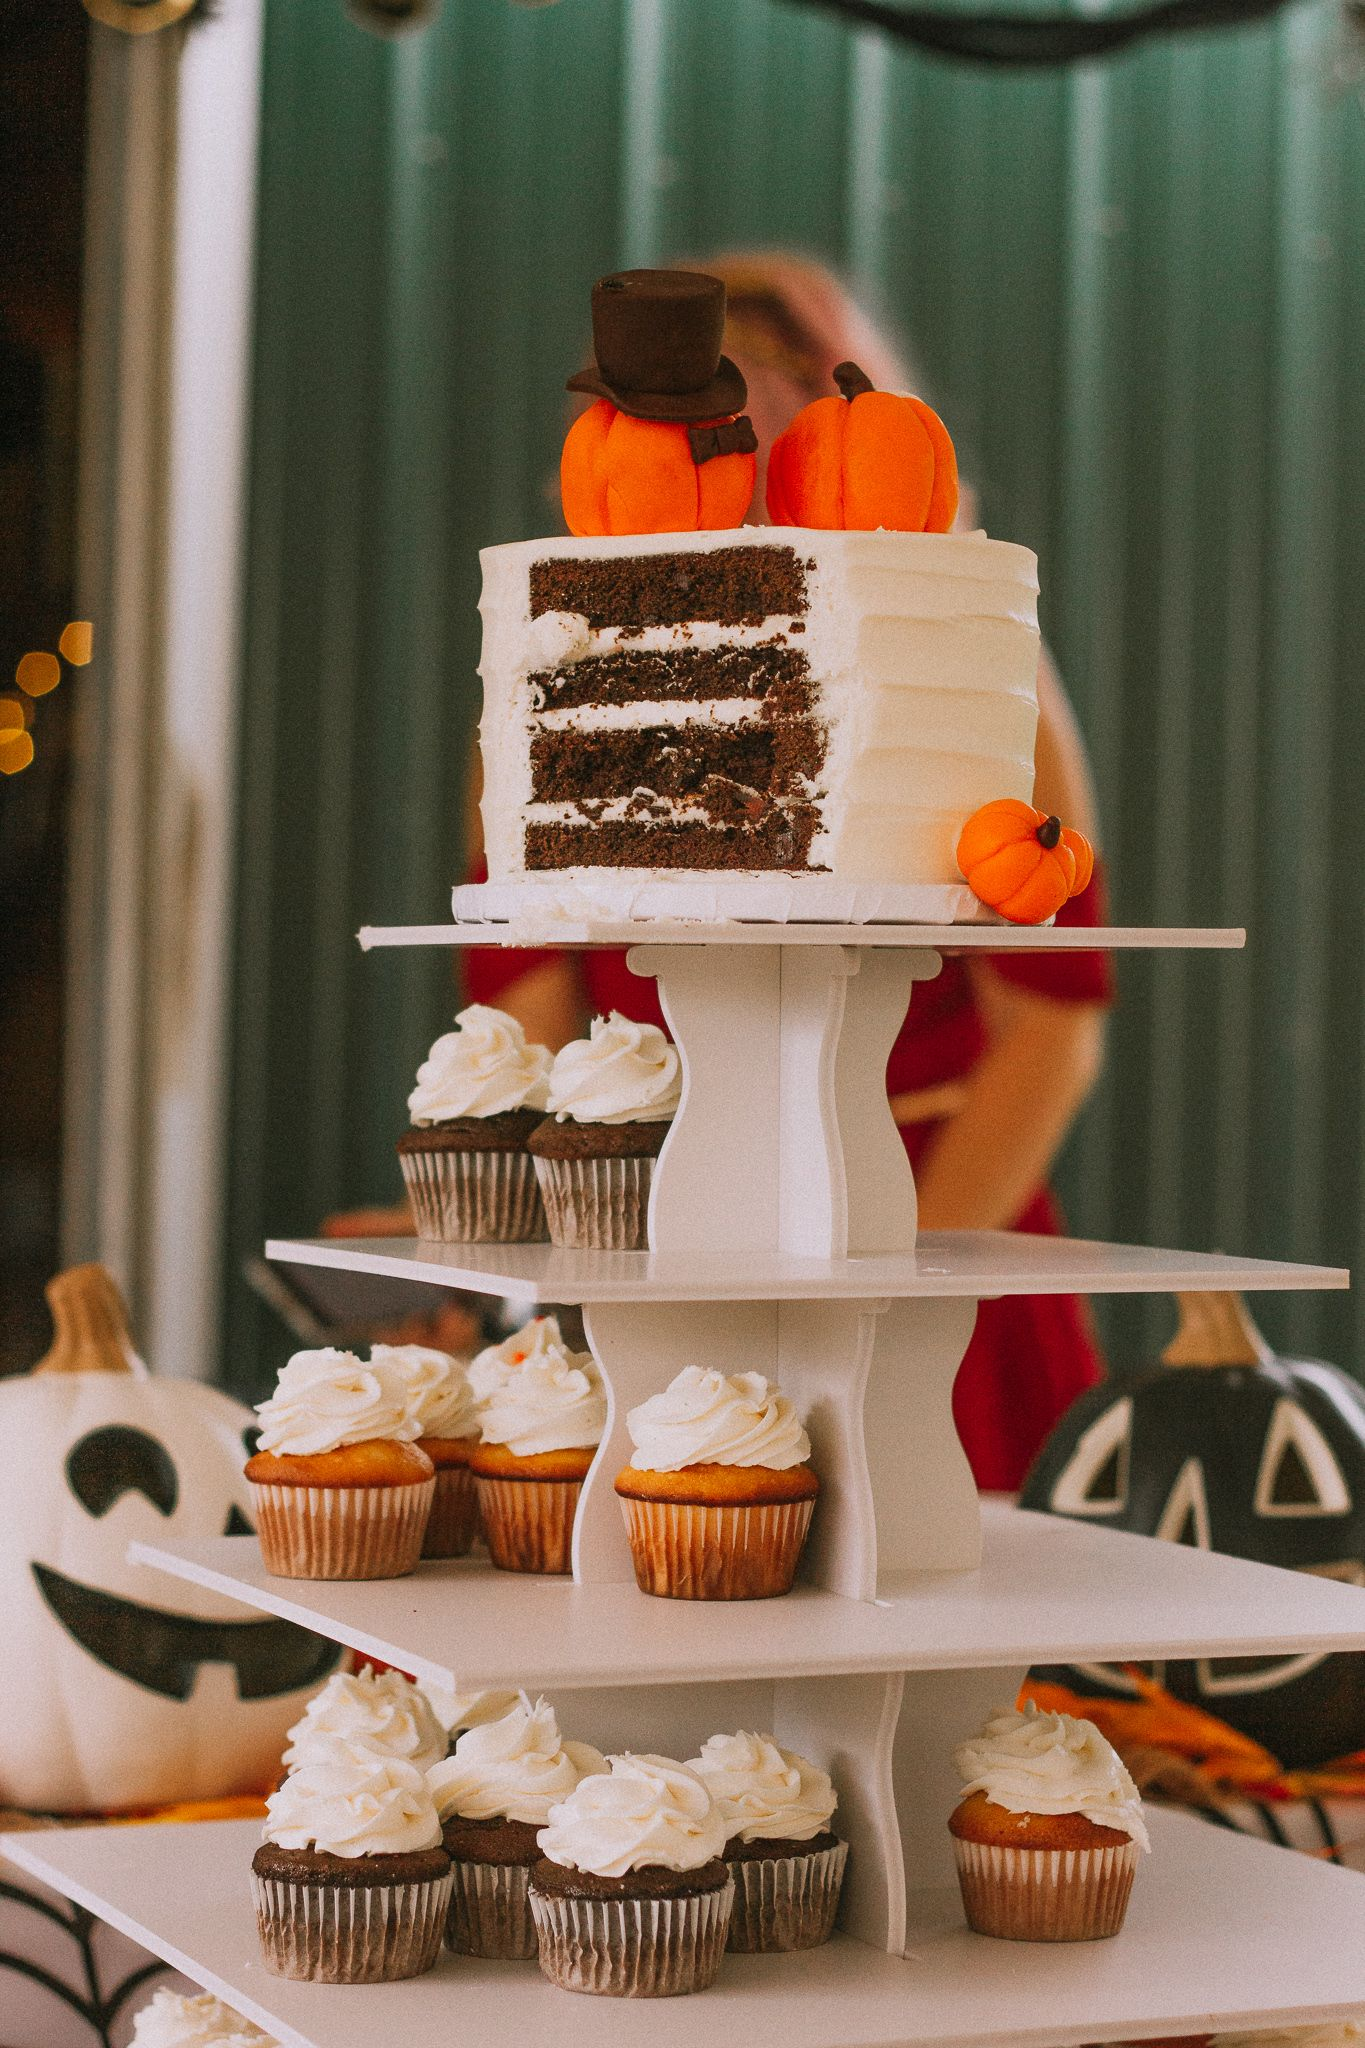 icing pumpkin dressed up as bride and groom on top of simple cake